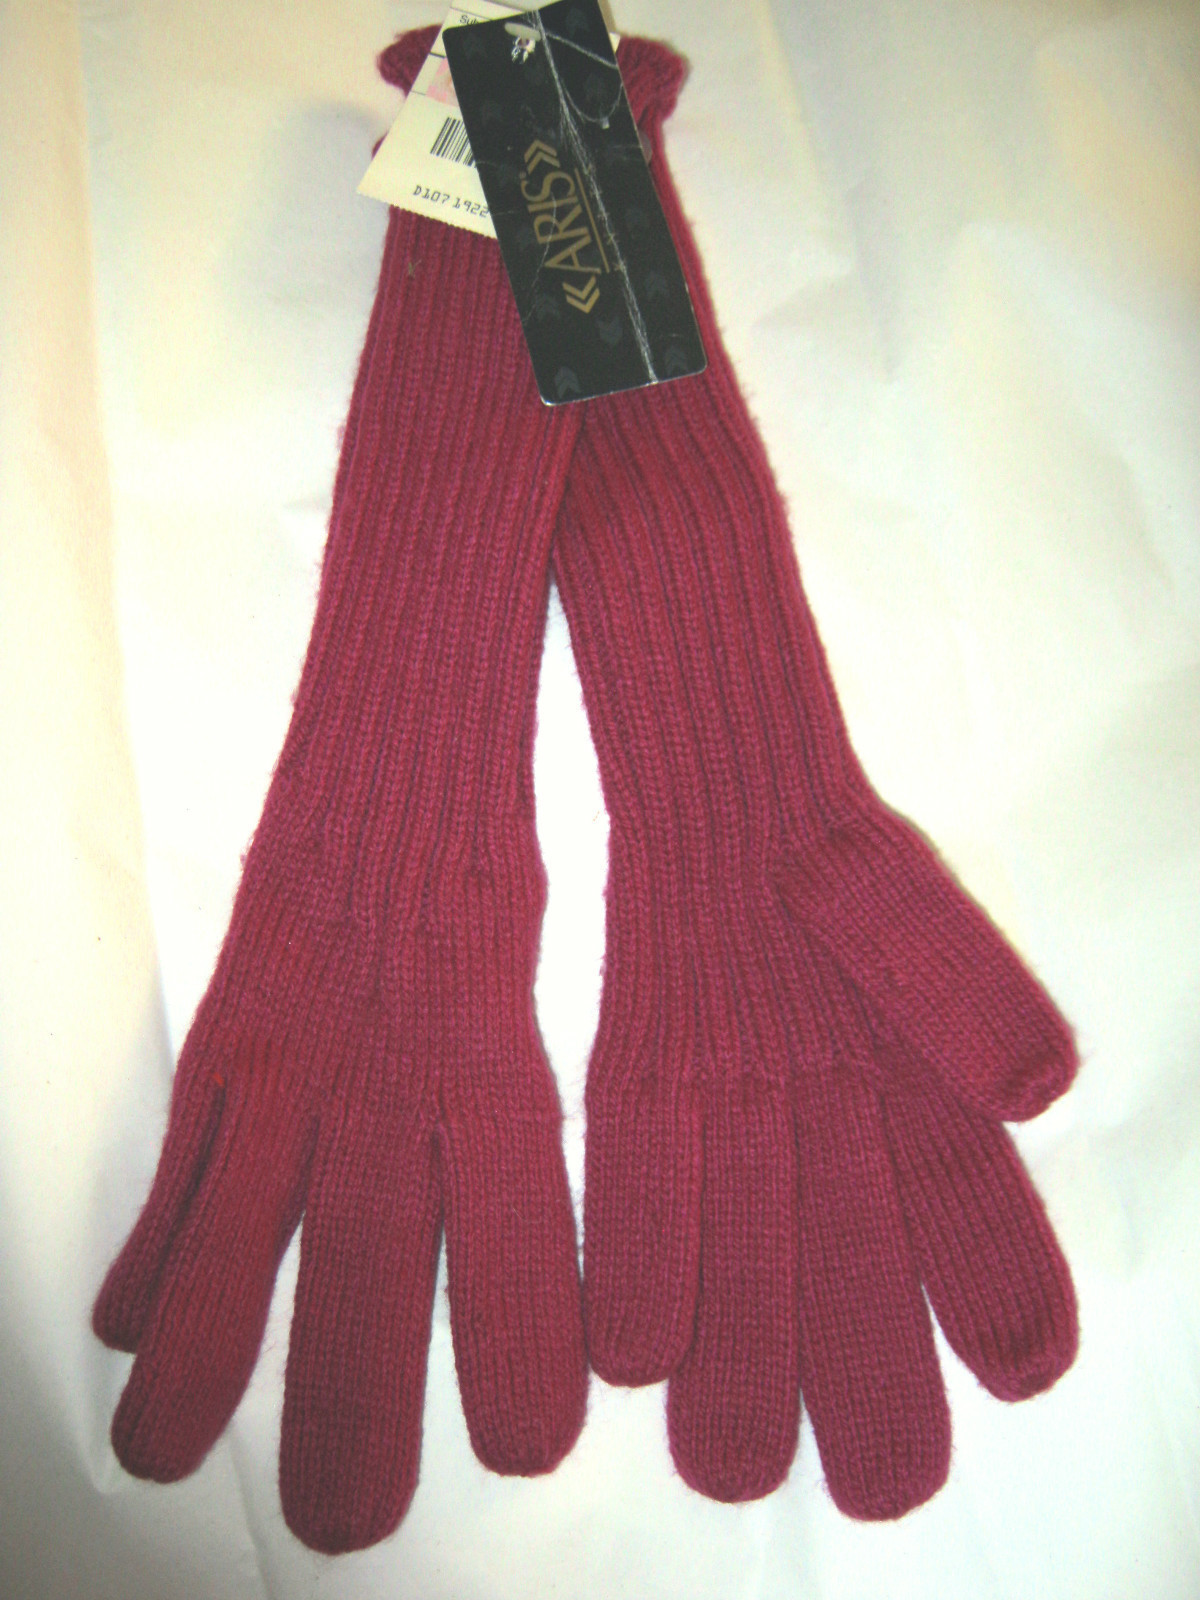 Primary image for Vtg Aris Knit mauve ribbed acrylic/nylon long elbow gloves 1 size NWT